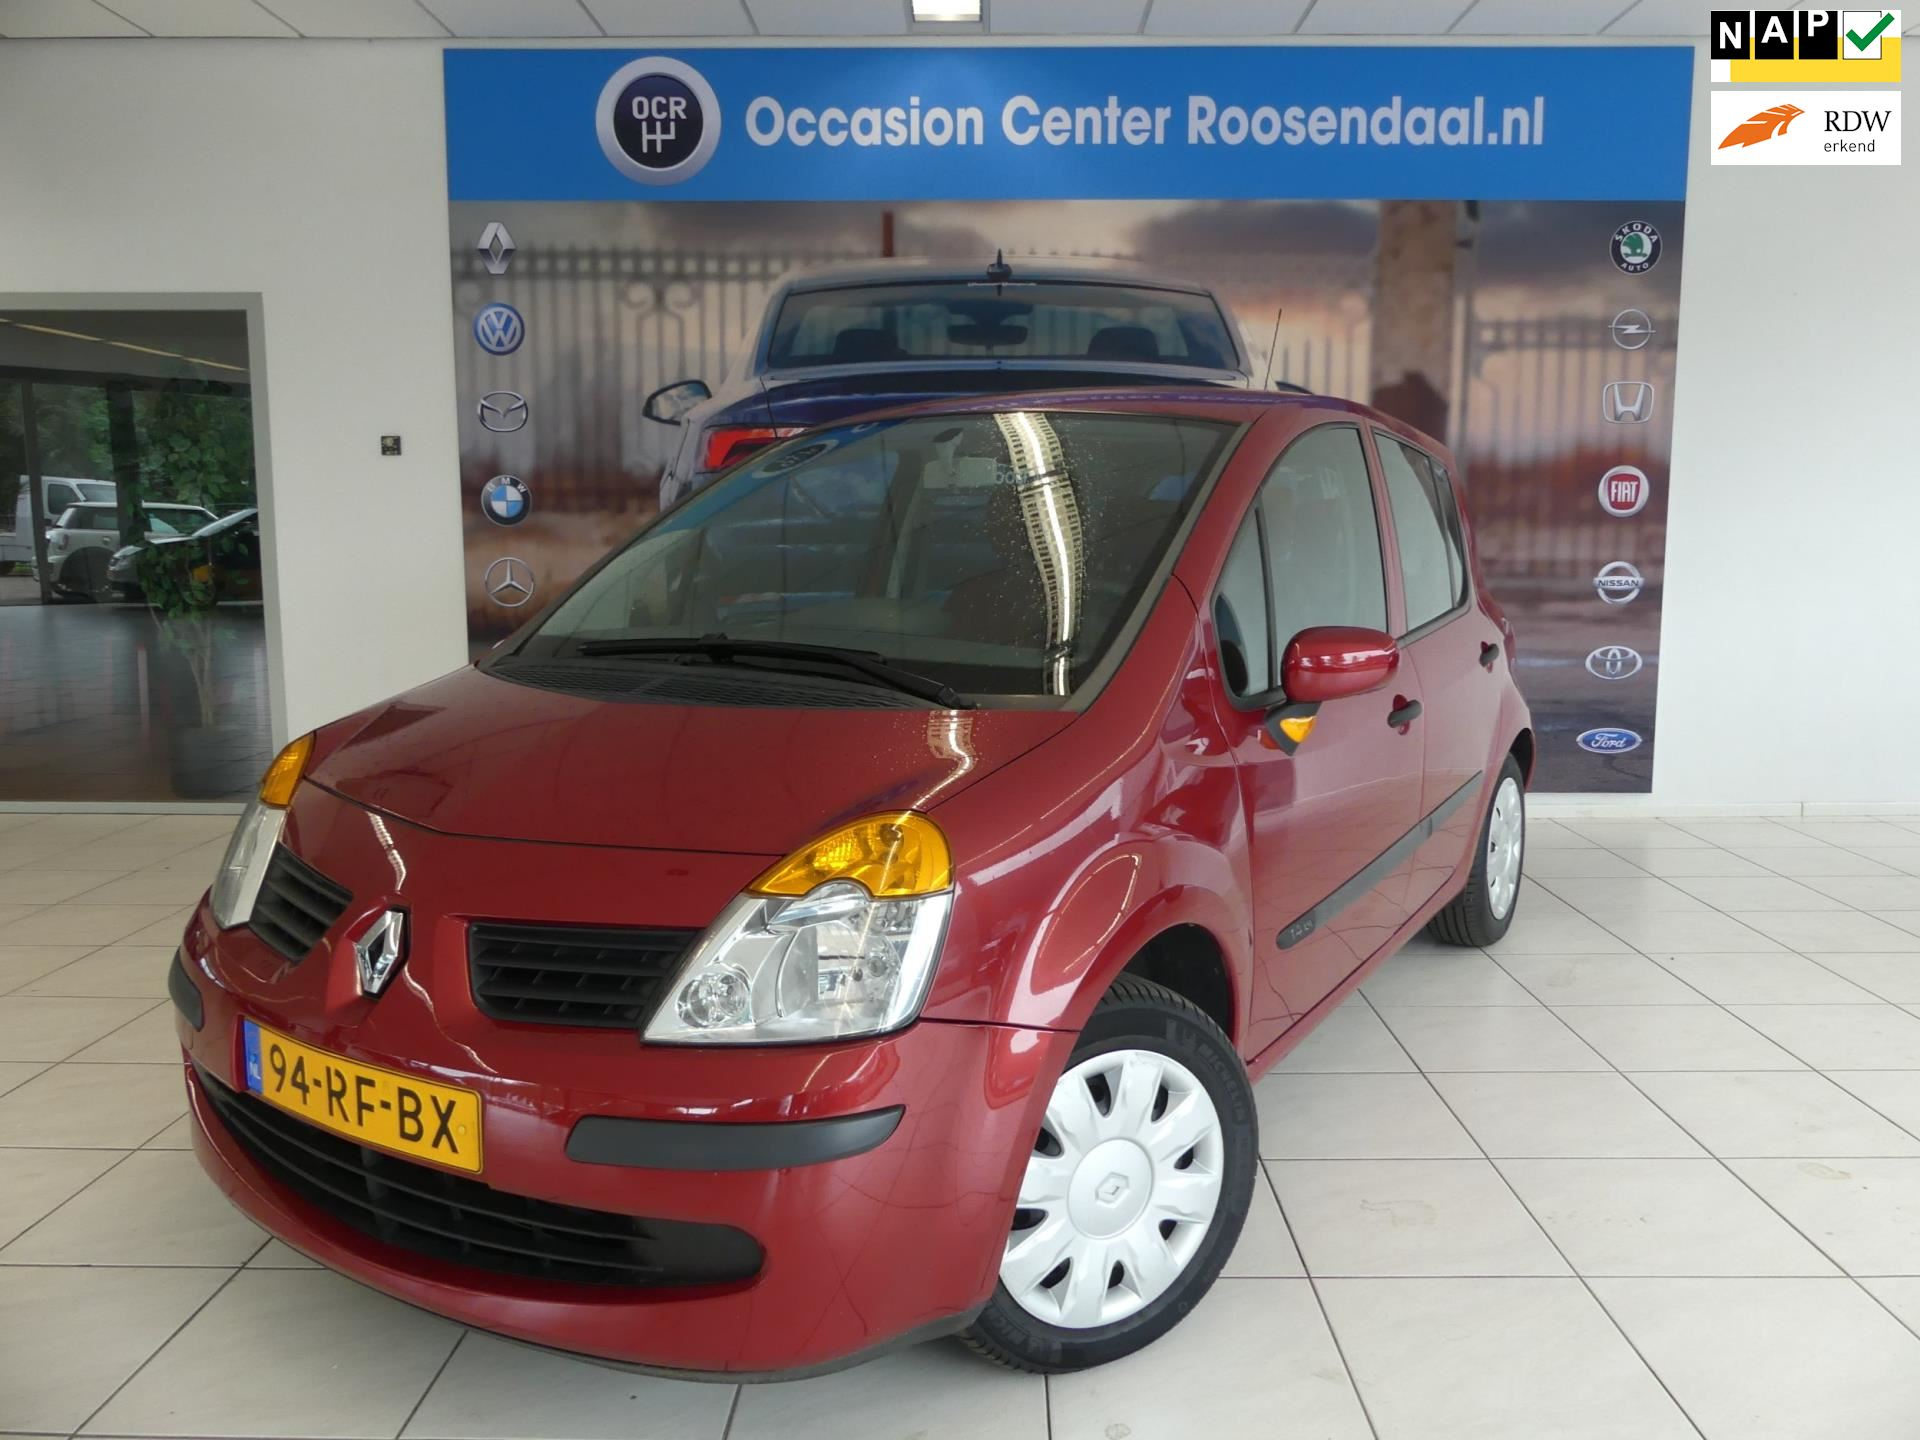 Renault Modus occasion - Occasion Center Roosendaal